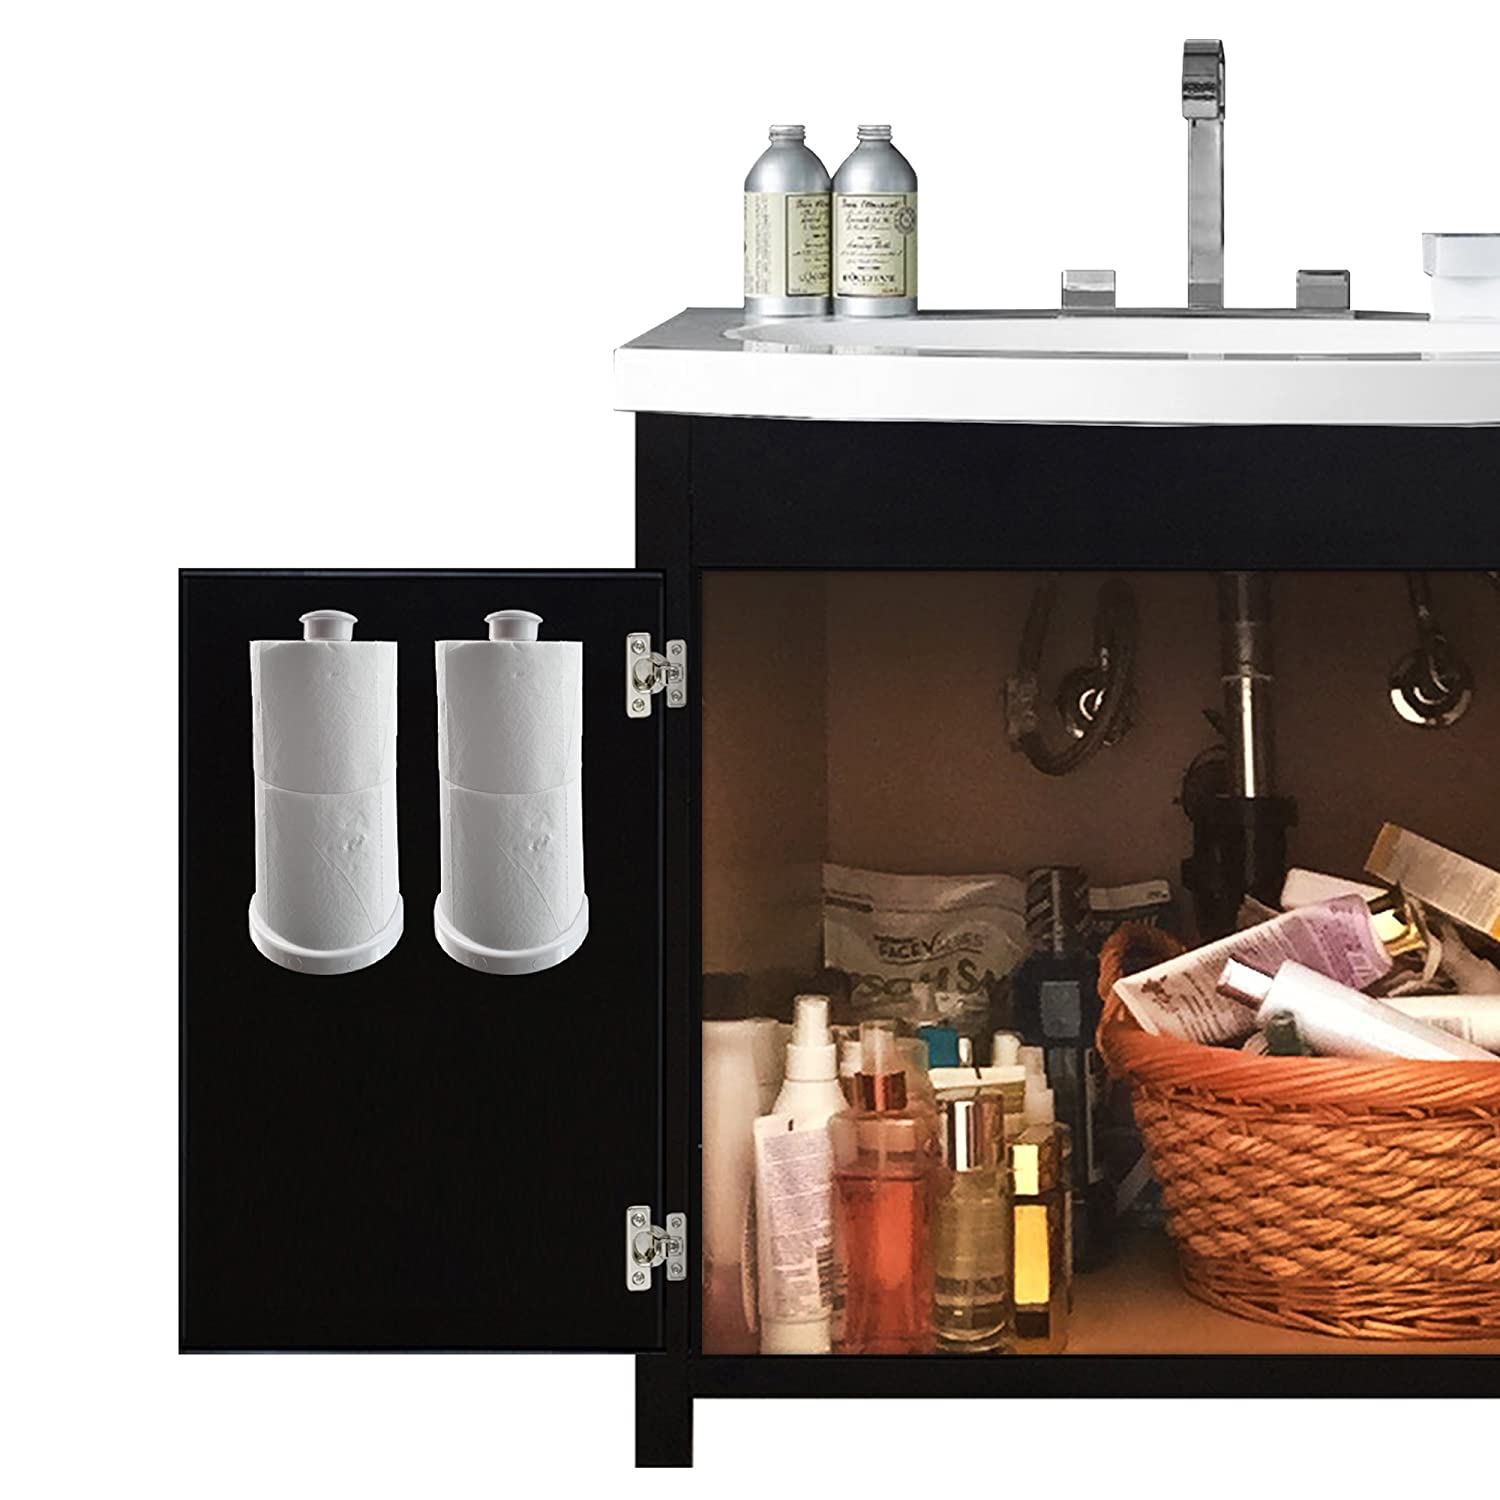 Spare toilet paper holder attaches inside bathroom vanity for Bathroom ideas 3m x 3m